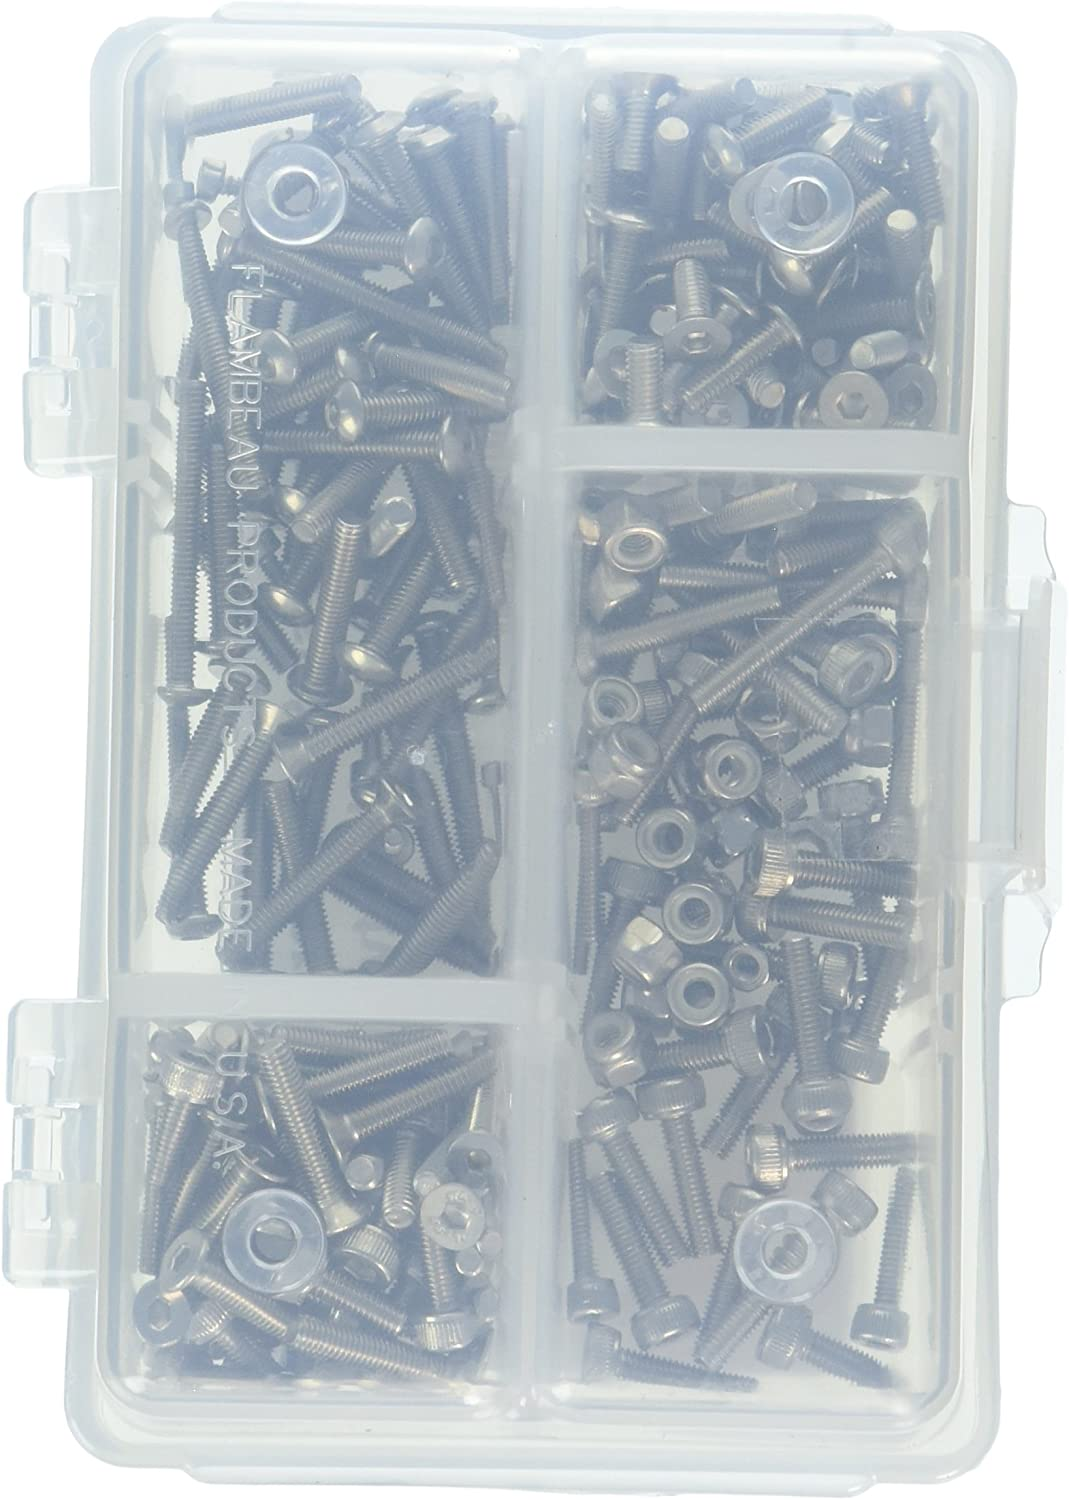 Dynamite DYNH3000 Stainless Steel Screw Set 2mm 3mm Variety Pack